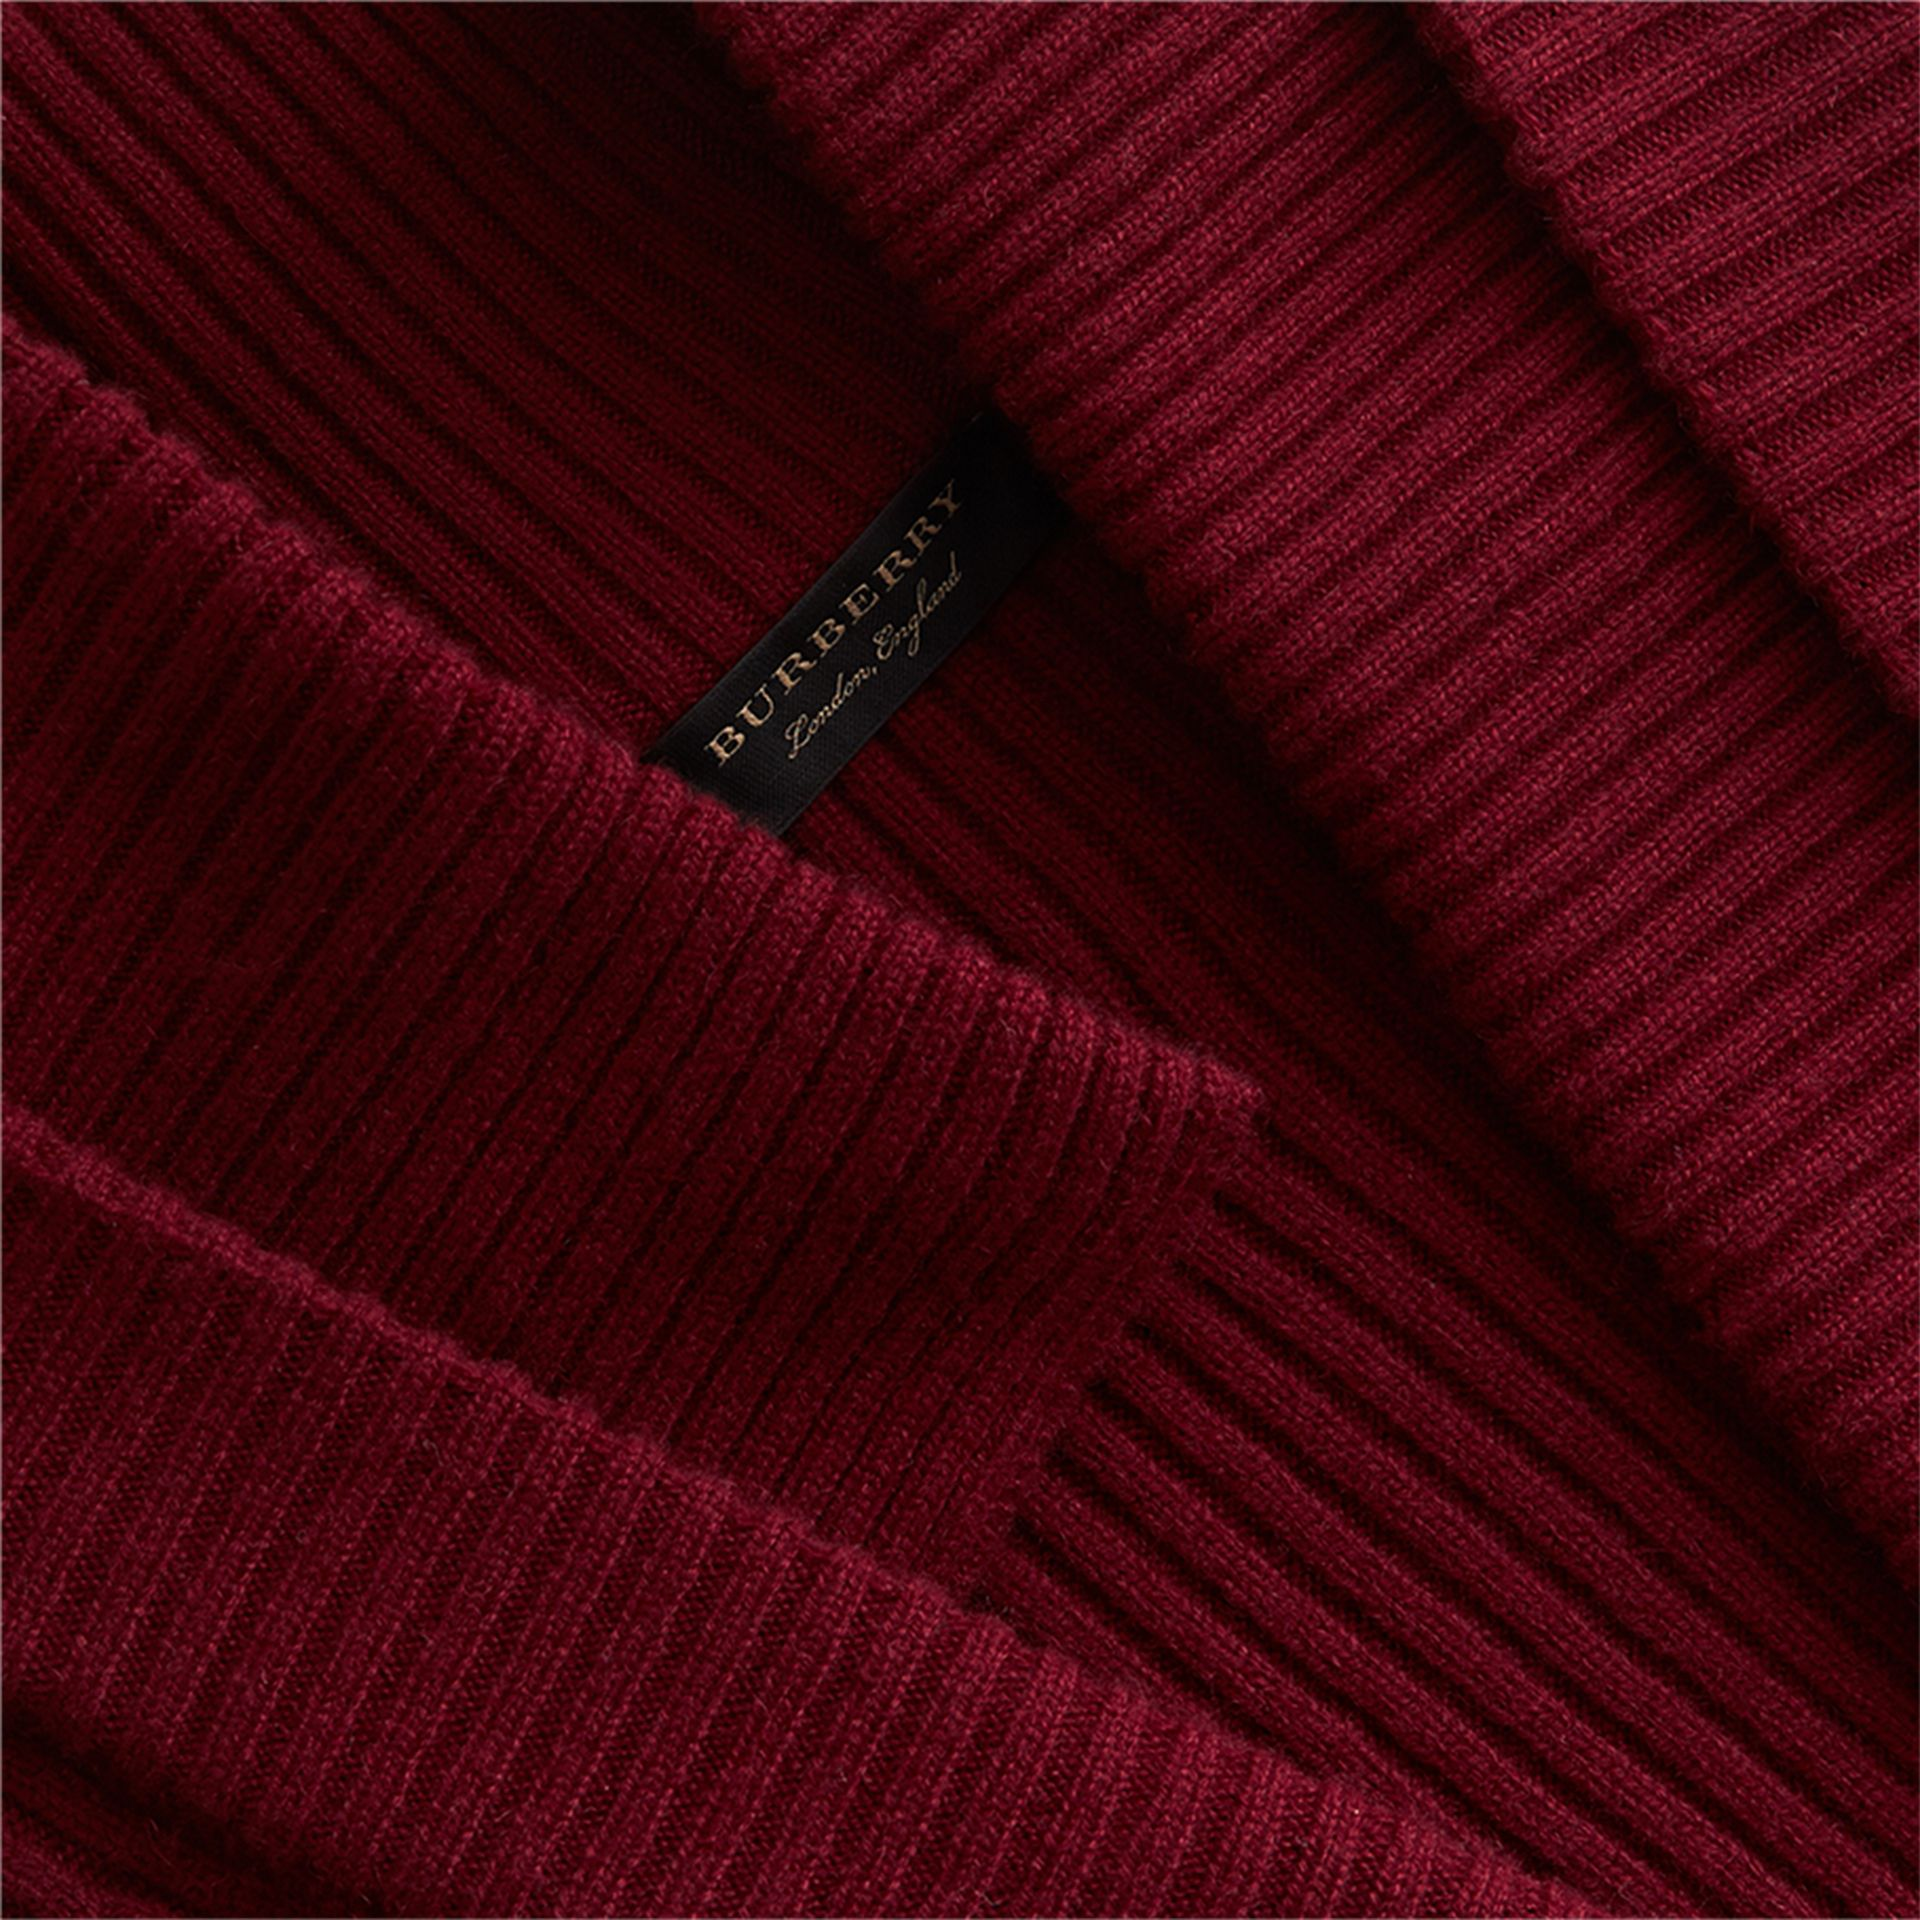 Knitted Wool Cashmere Military-inspired Jacket in Bordeaux - Women | Burberry - gallery image 2